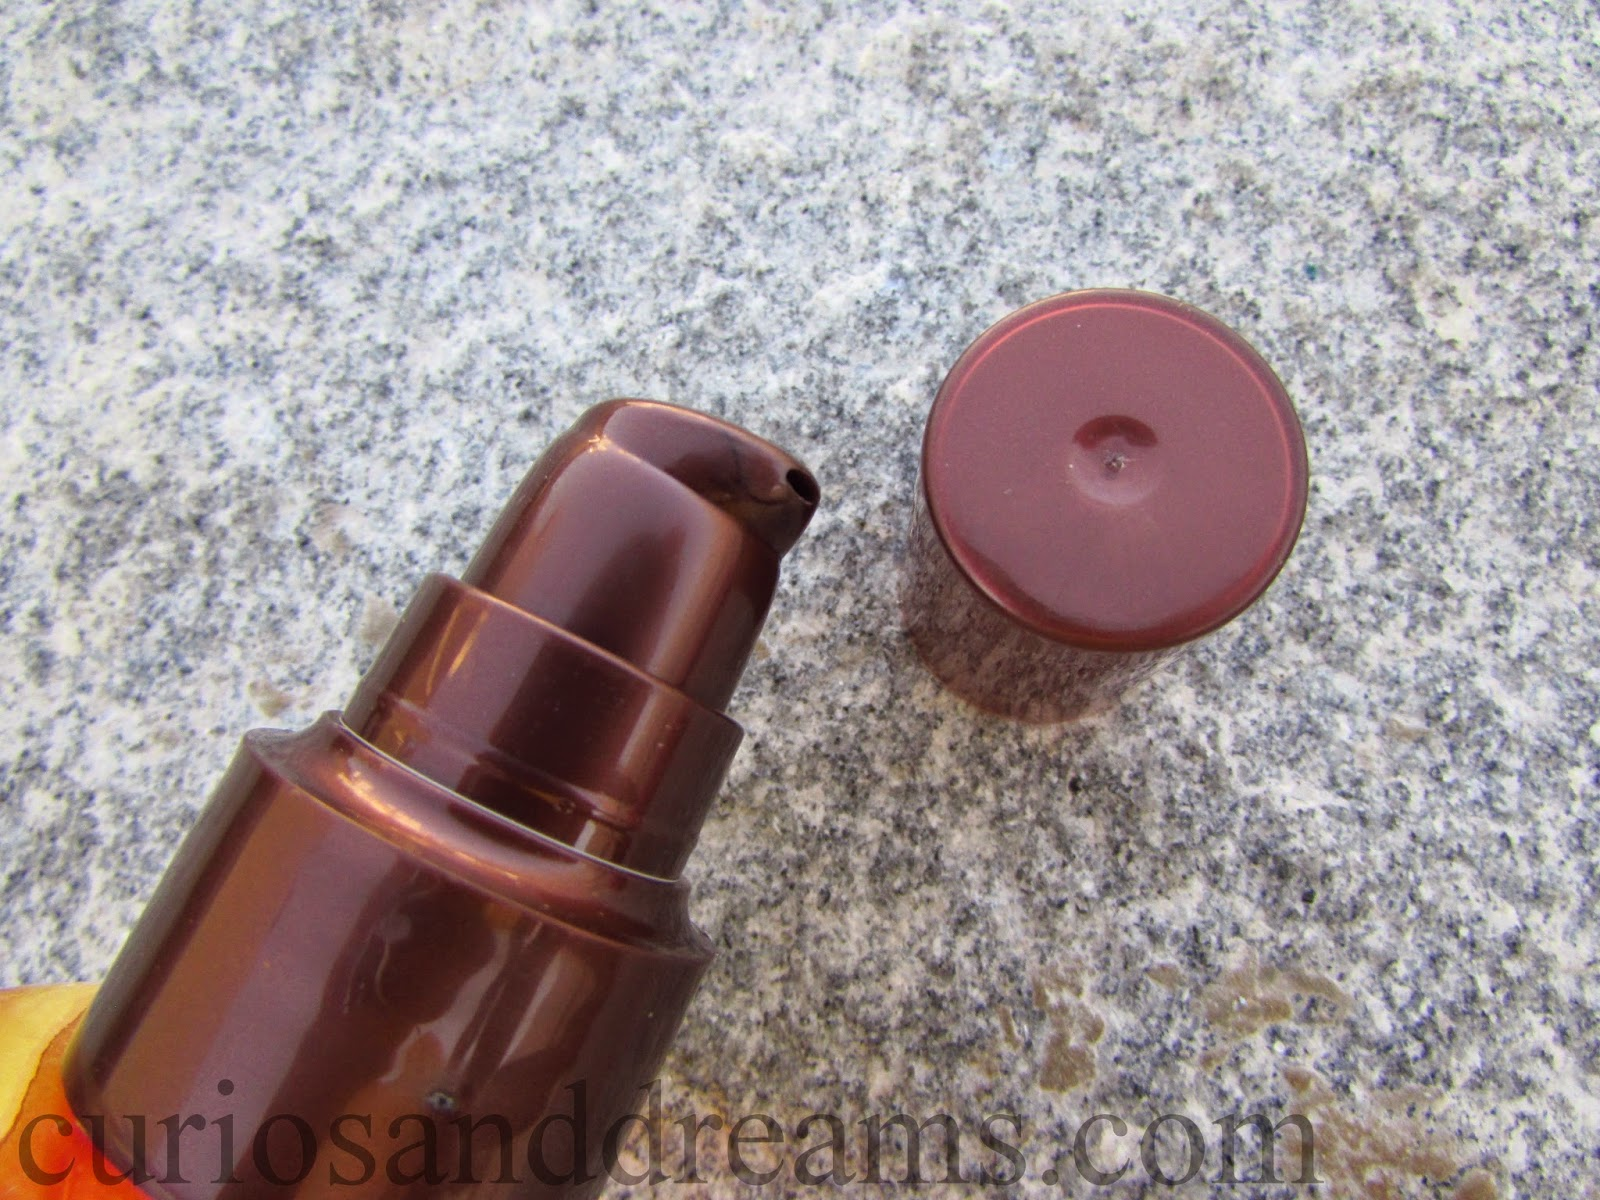 Wella Oil Reflections review, Wella Oil Reflections hair serum review